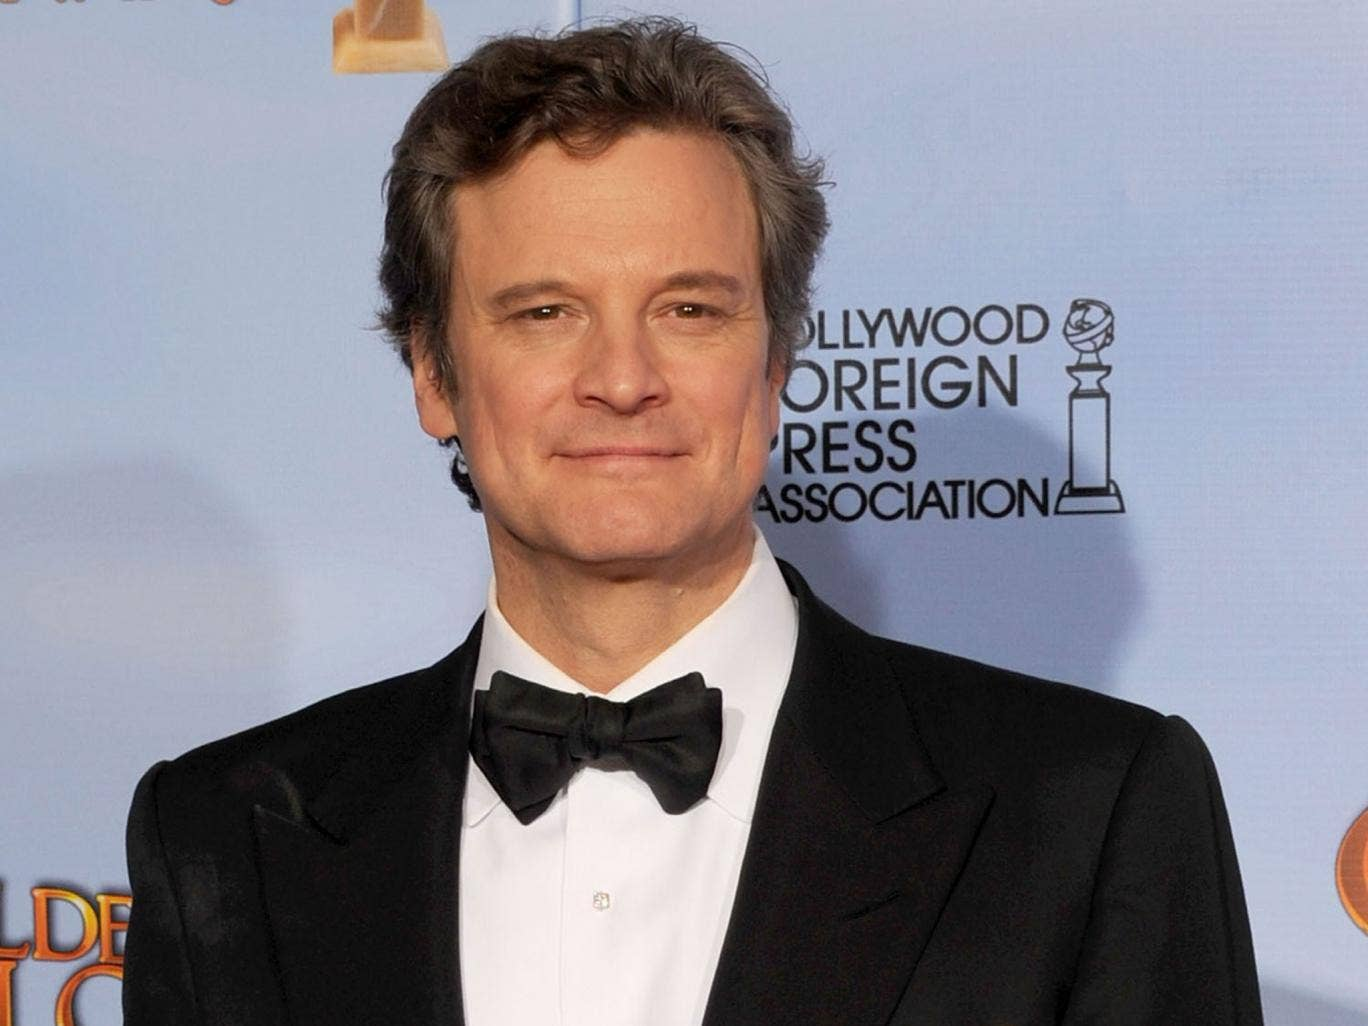 Colin Firth is rather popular with the ladies